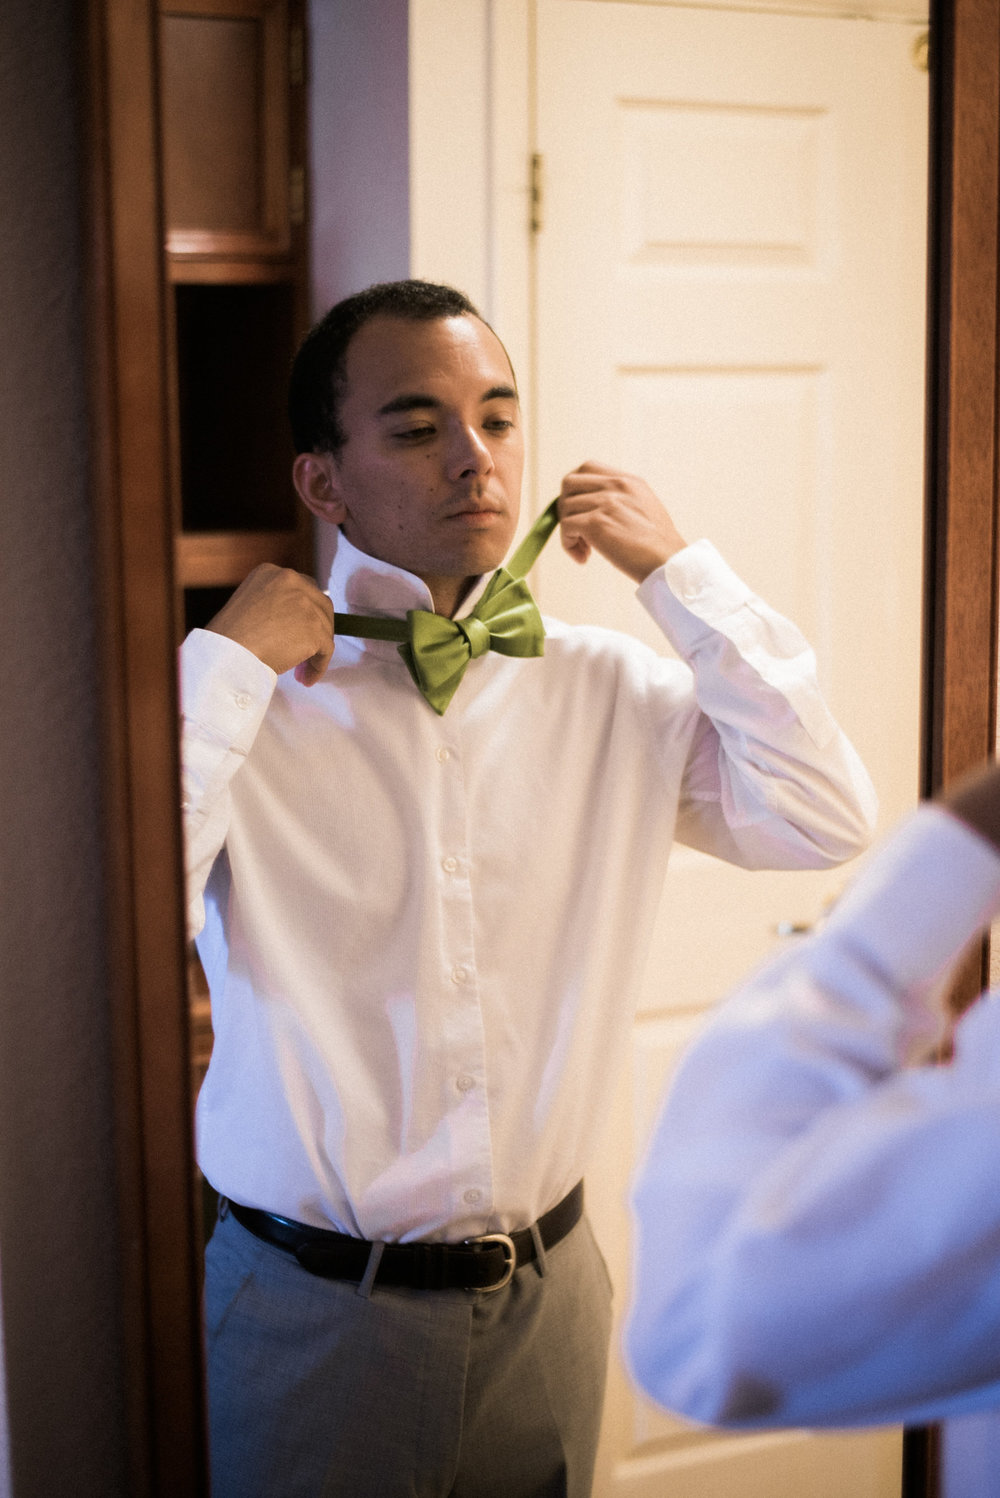 Groom tying bow tie